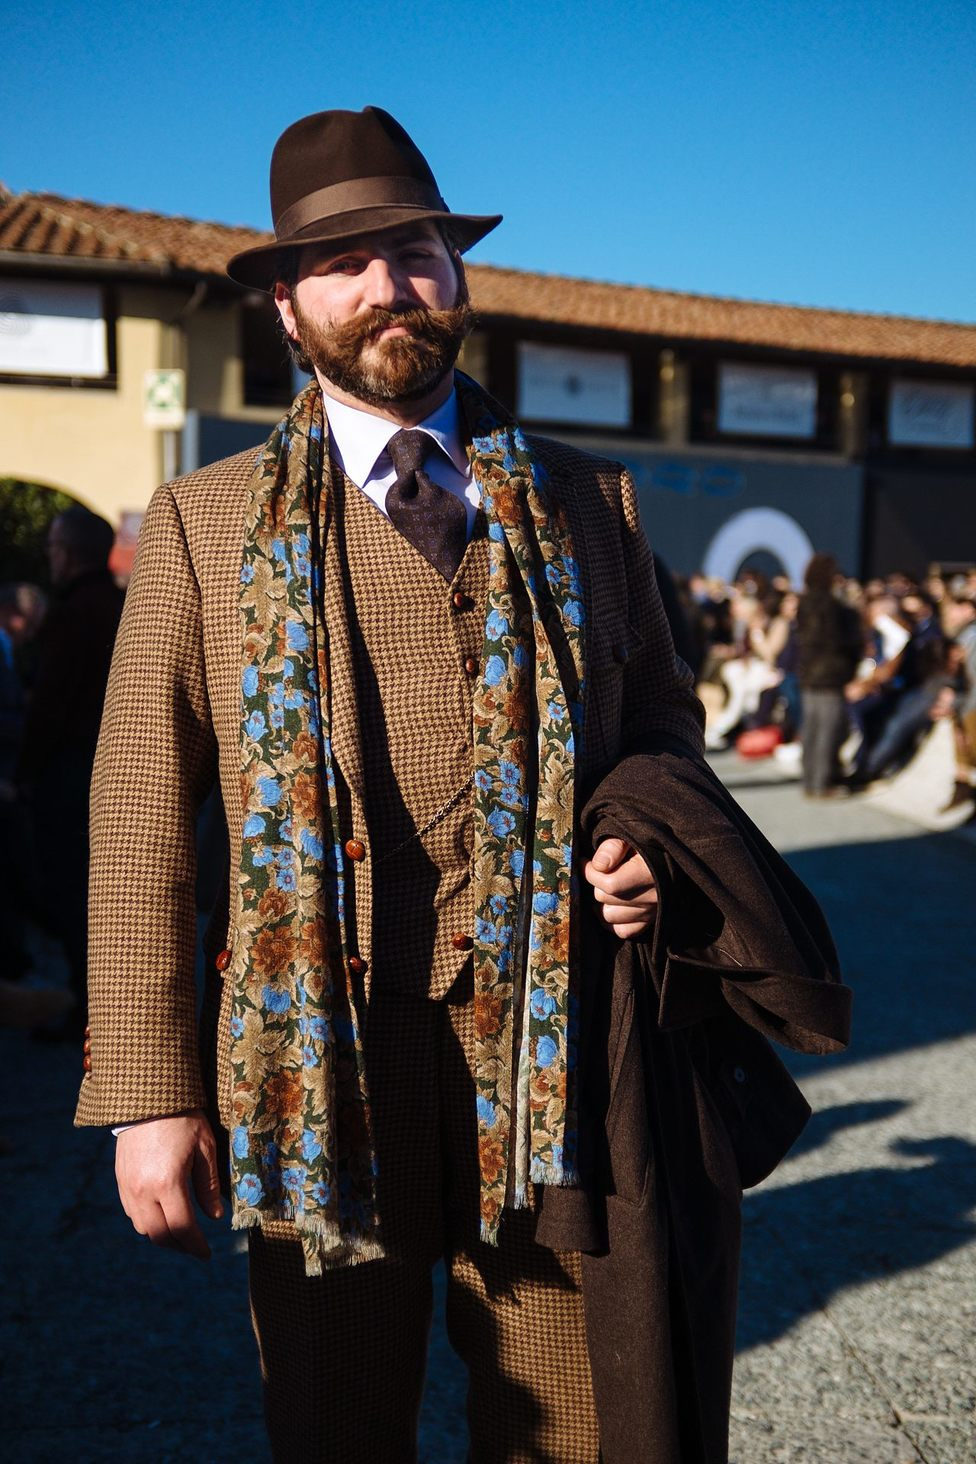 Firenze-89-Pitti-Uomo-Fashion-Photography-32